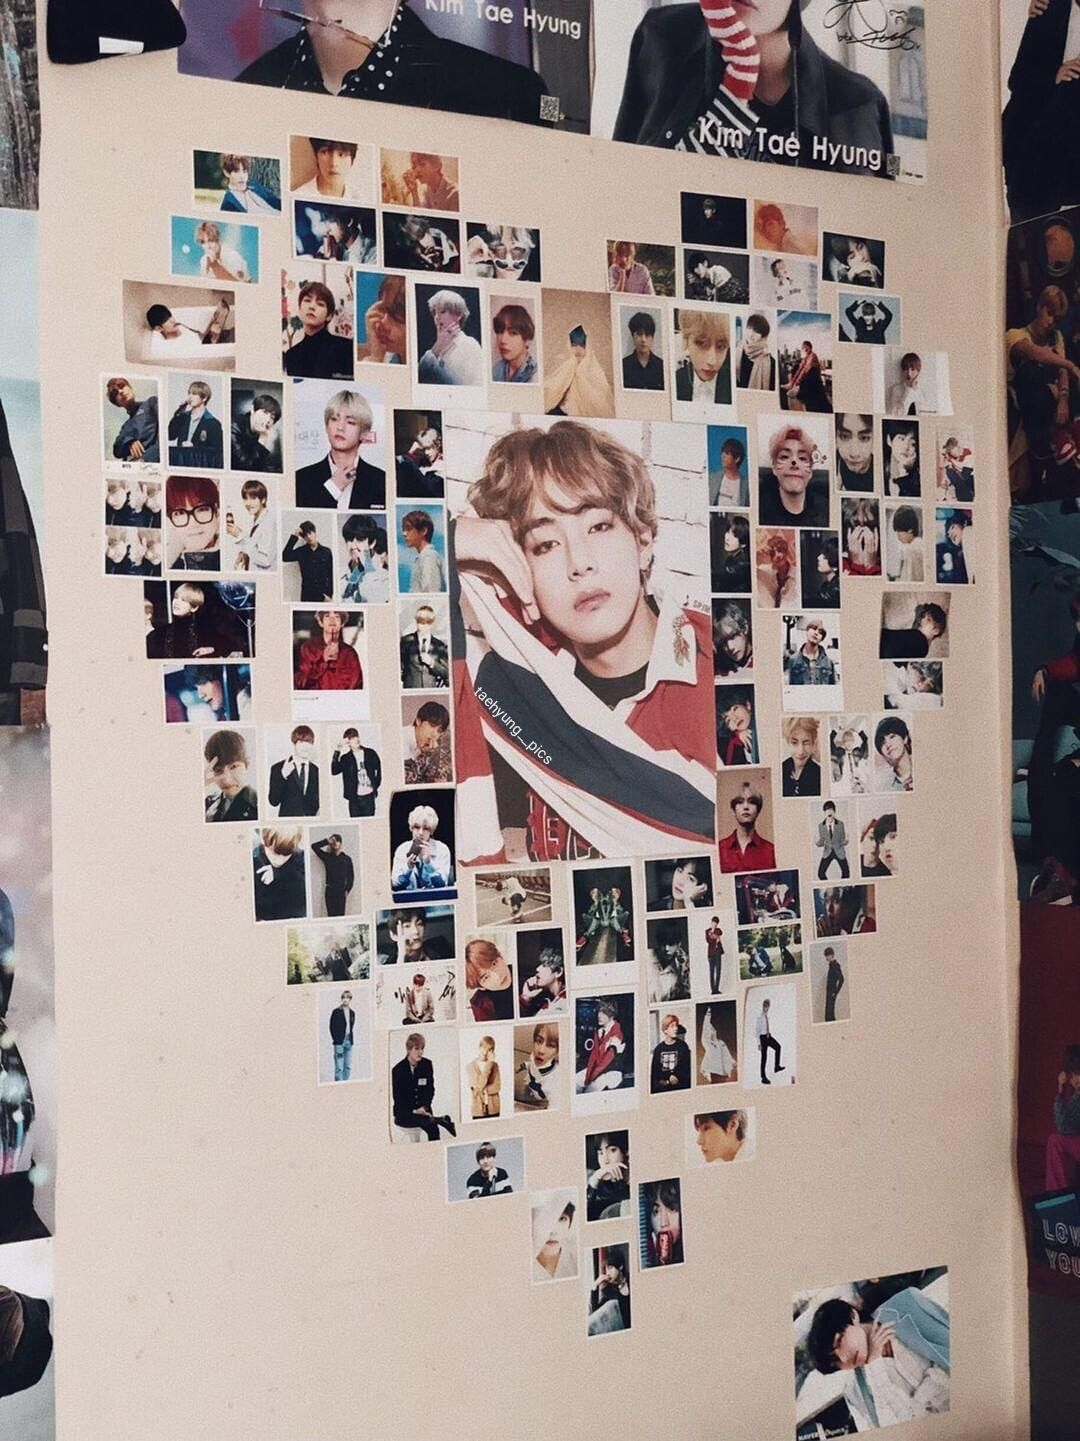 Bts Armyroom Taehyung Army Room Decor Wall Collage Iphone Background Wallpaper Bts wallpaper for room